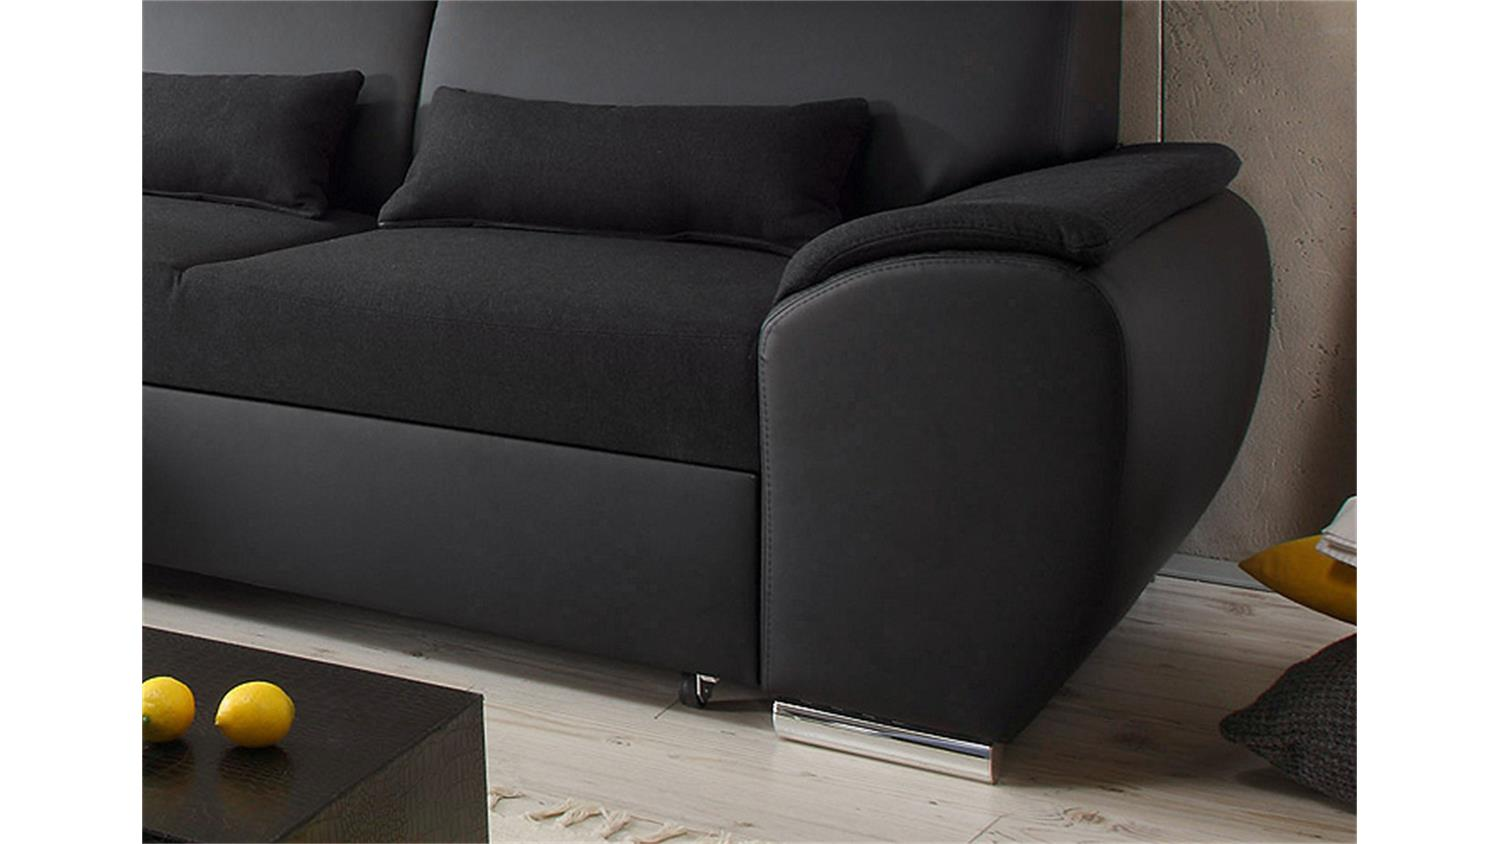 ecksofa antara schwarz schlaffunktion 173 x 277 cm links. Black Bedroom Furniture Sets. Home Design Ideas